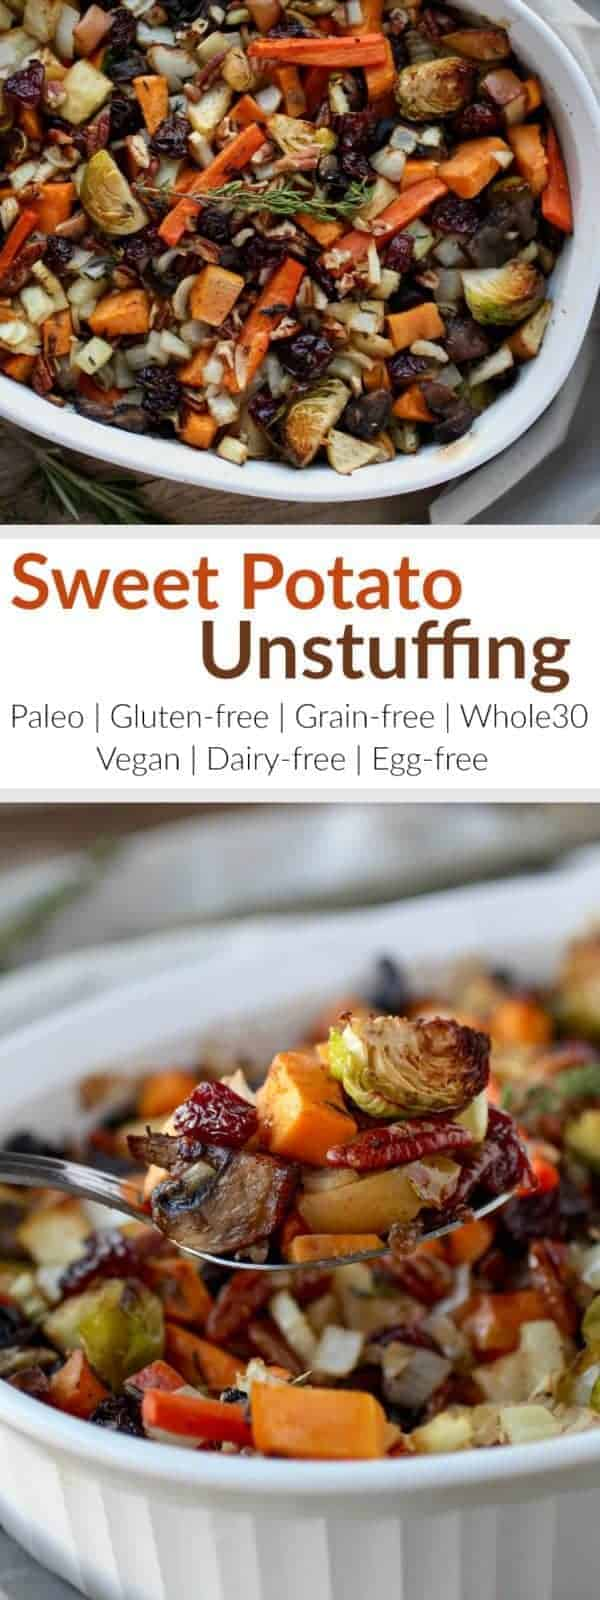 Gluten-Free Sweet Potato Unstuffing makes for a crowd-pleasing Thanksgiving side-dish or a tasty addition to your weeknight menu. | paleo thanksgiving recipes | gluten-free thanksgiving recipes | grain-free thanksgiving recipes | whole30 thanksgiving recipes | vegan thanksgiving recipes | dairy-free thanksgiving recipes | egg-free thanksgiving recipes | healthy thanksgiving recipes || The Real Food Dietitians